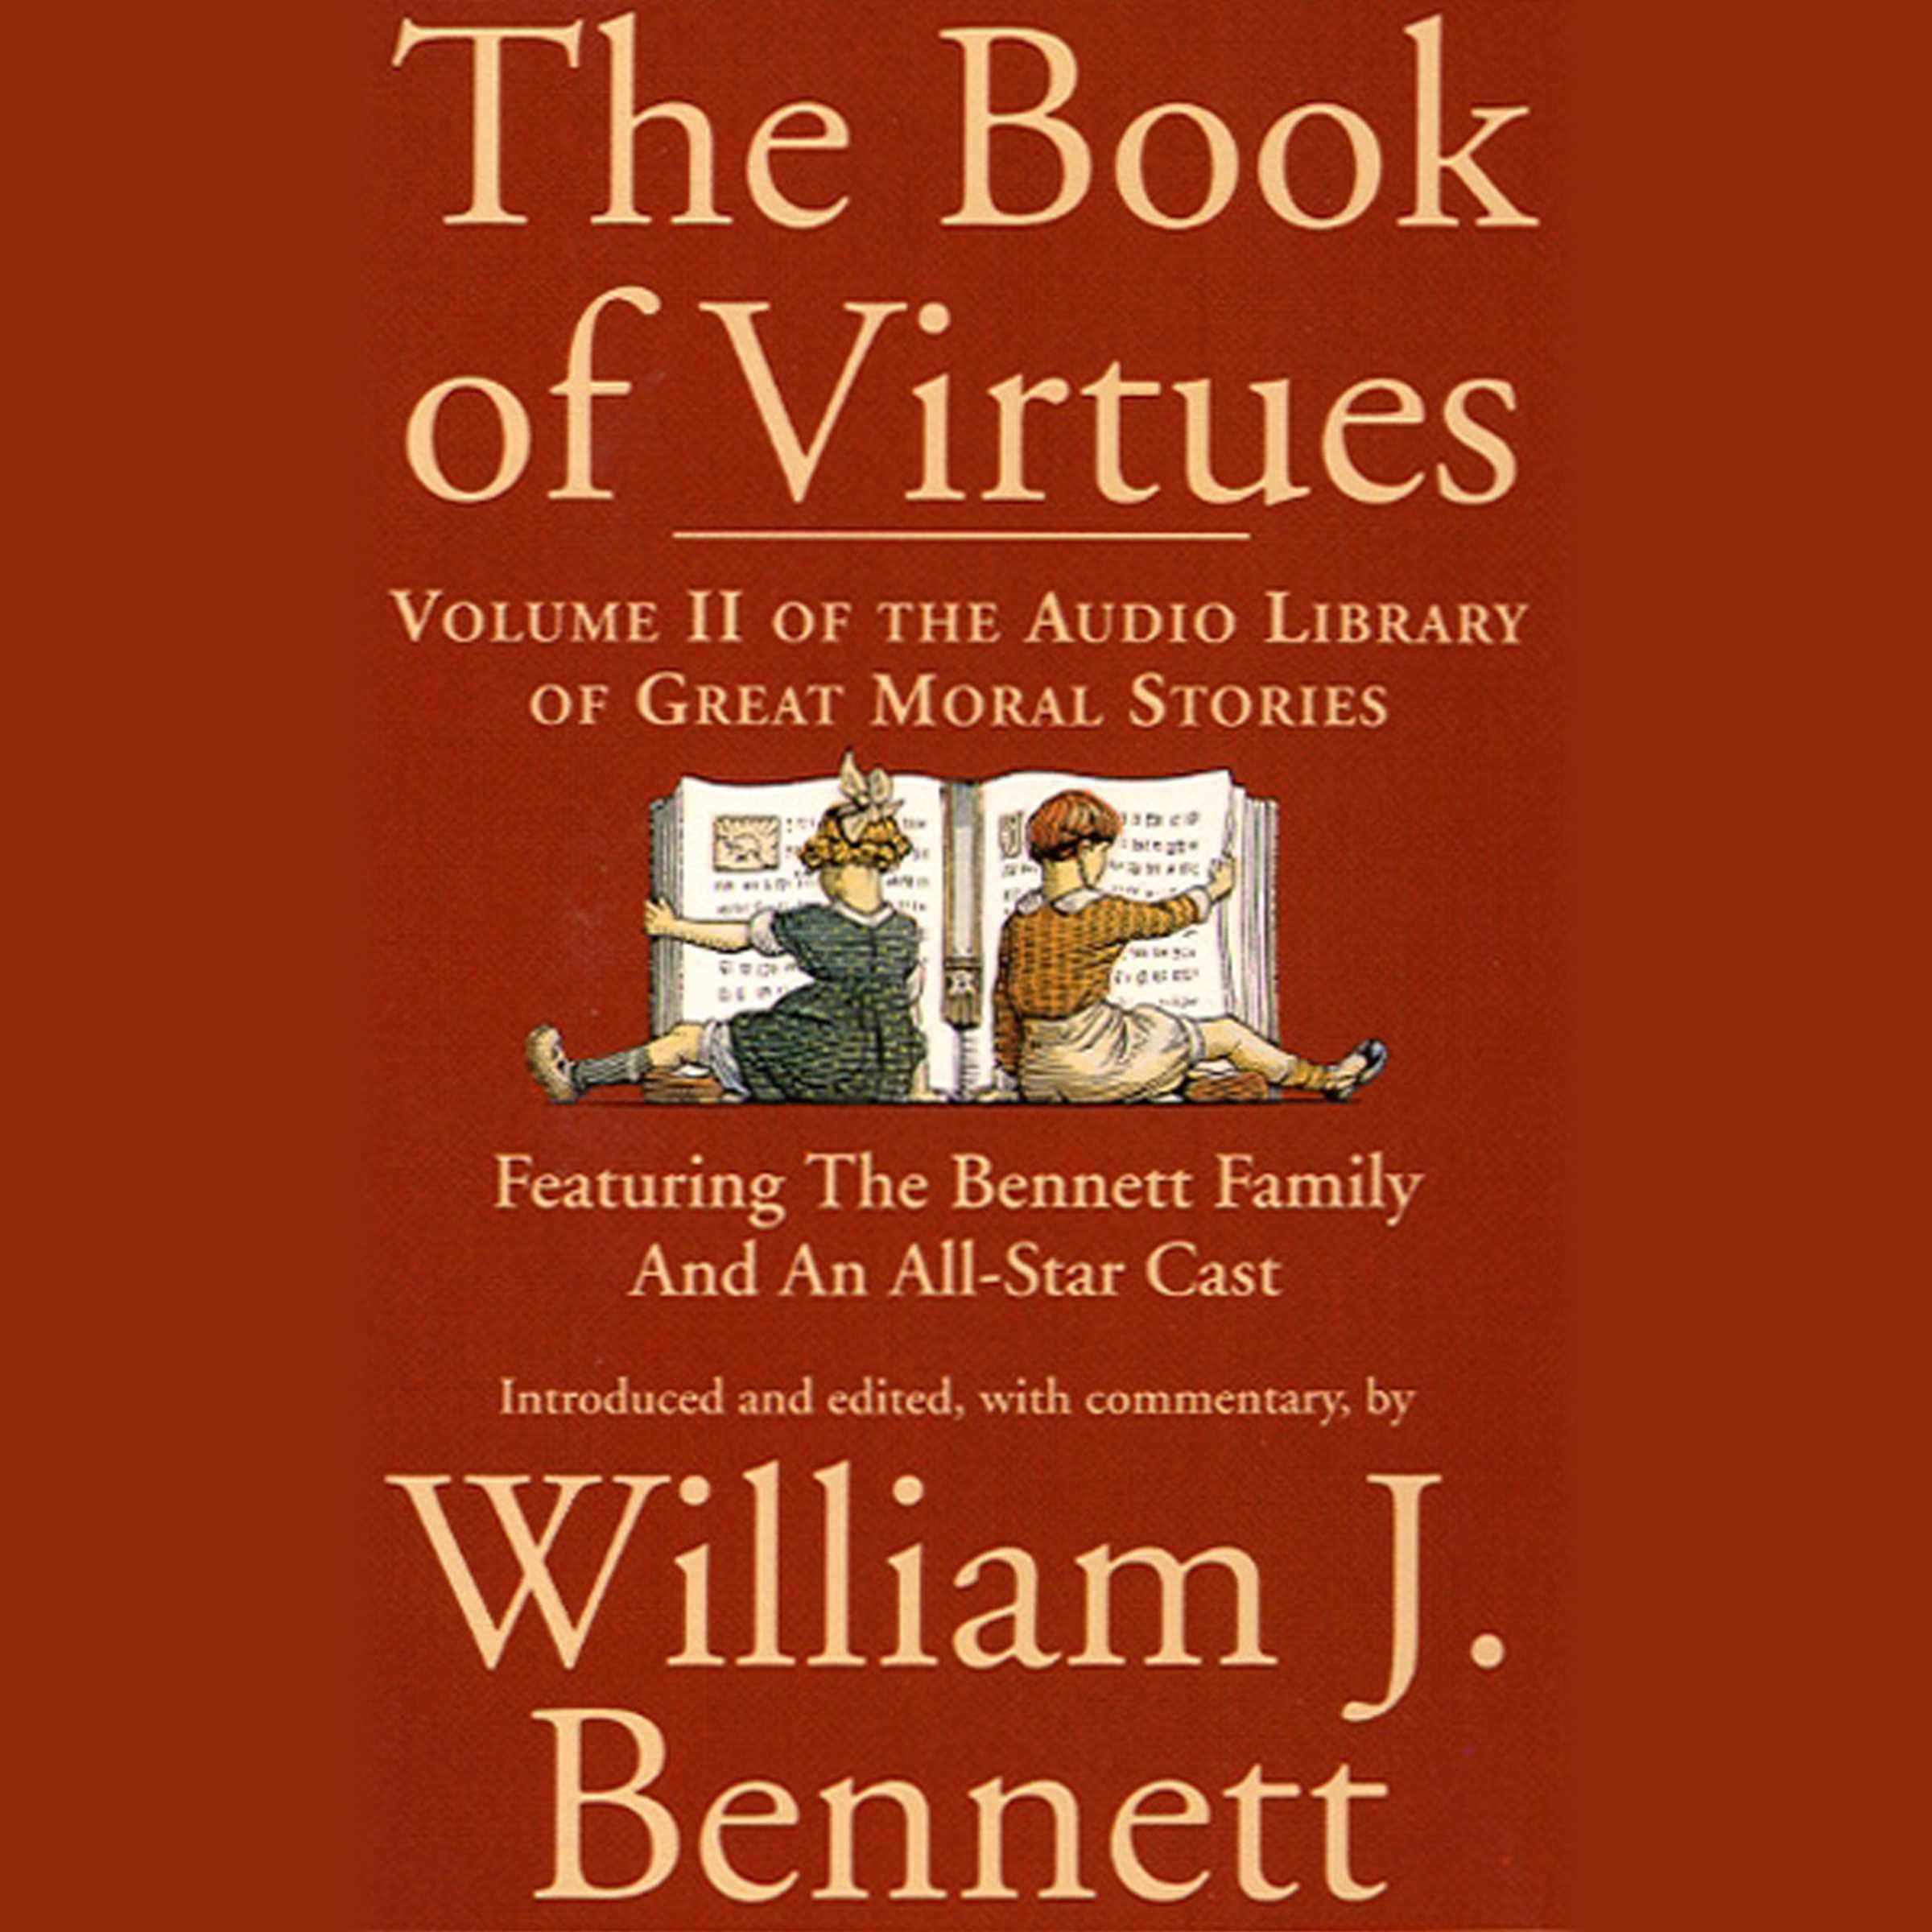 The book of virtues volume ii 9780743542159 hr